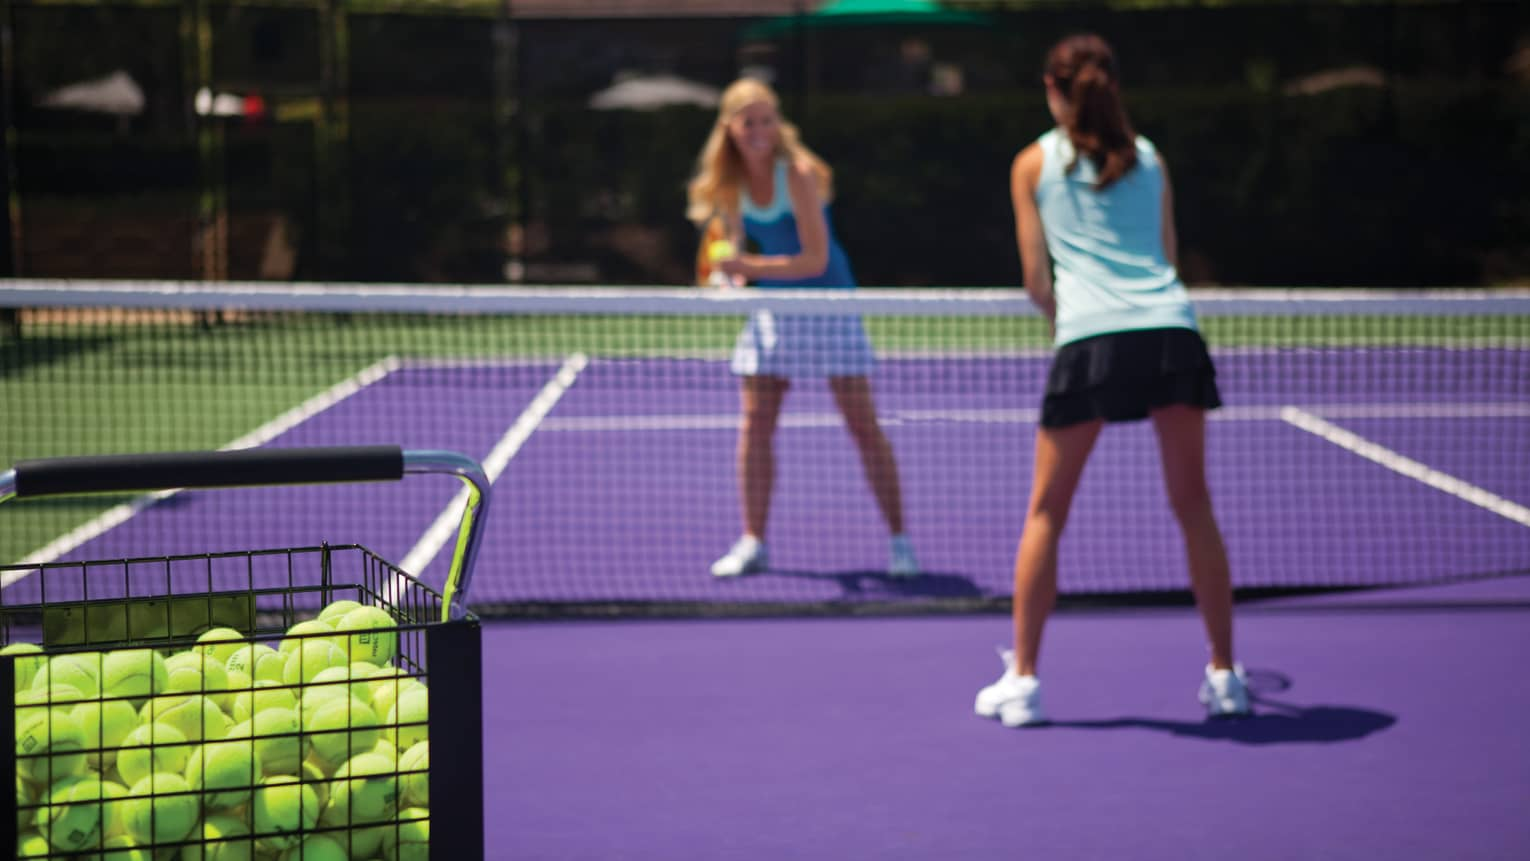 Basket of green tennis balls by purple court where two women stand on either side of net